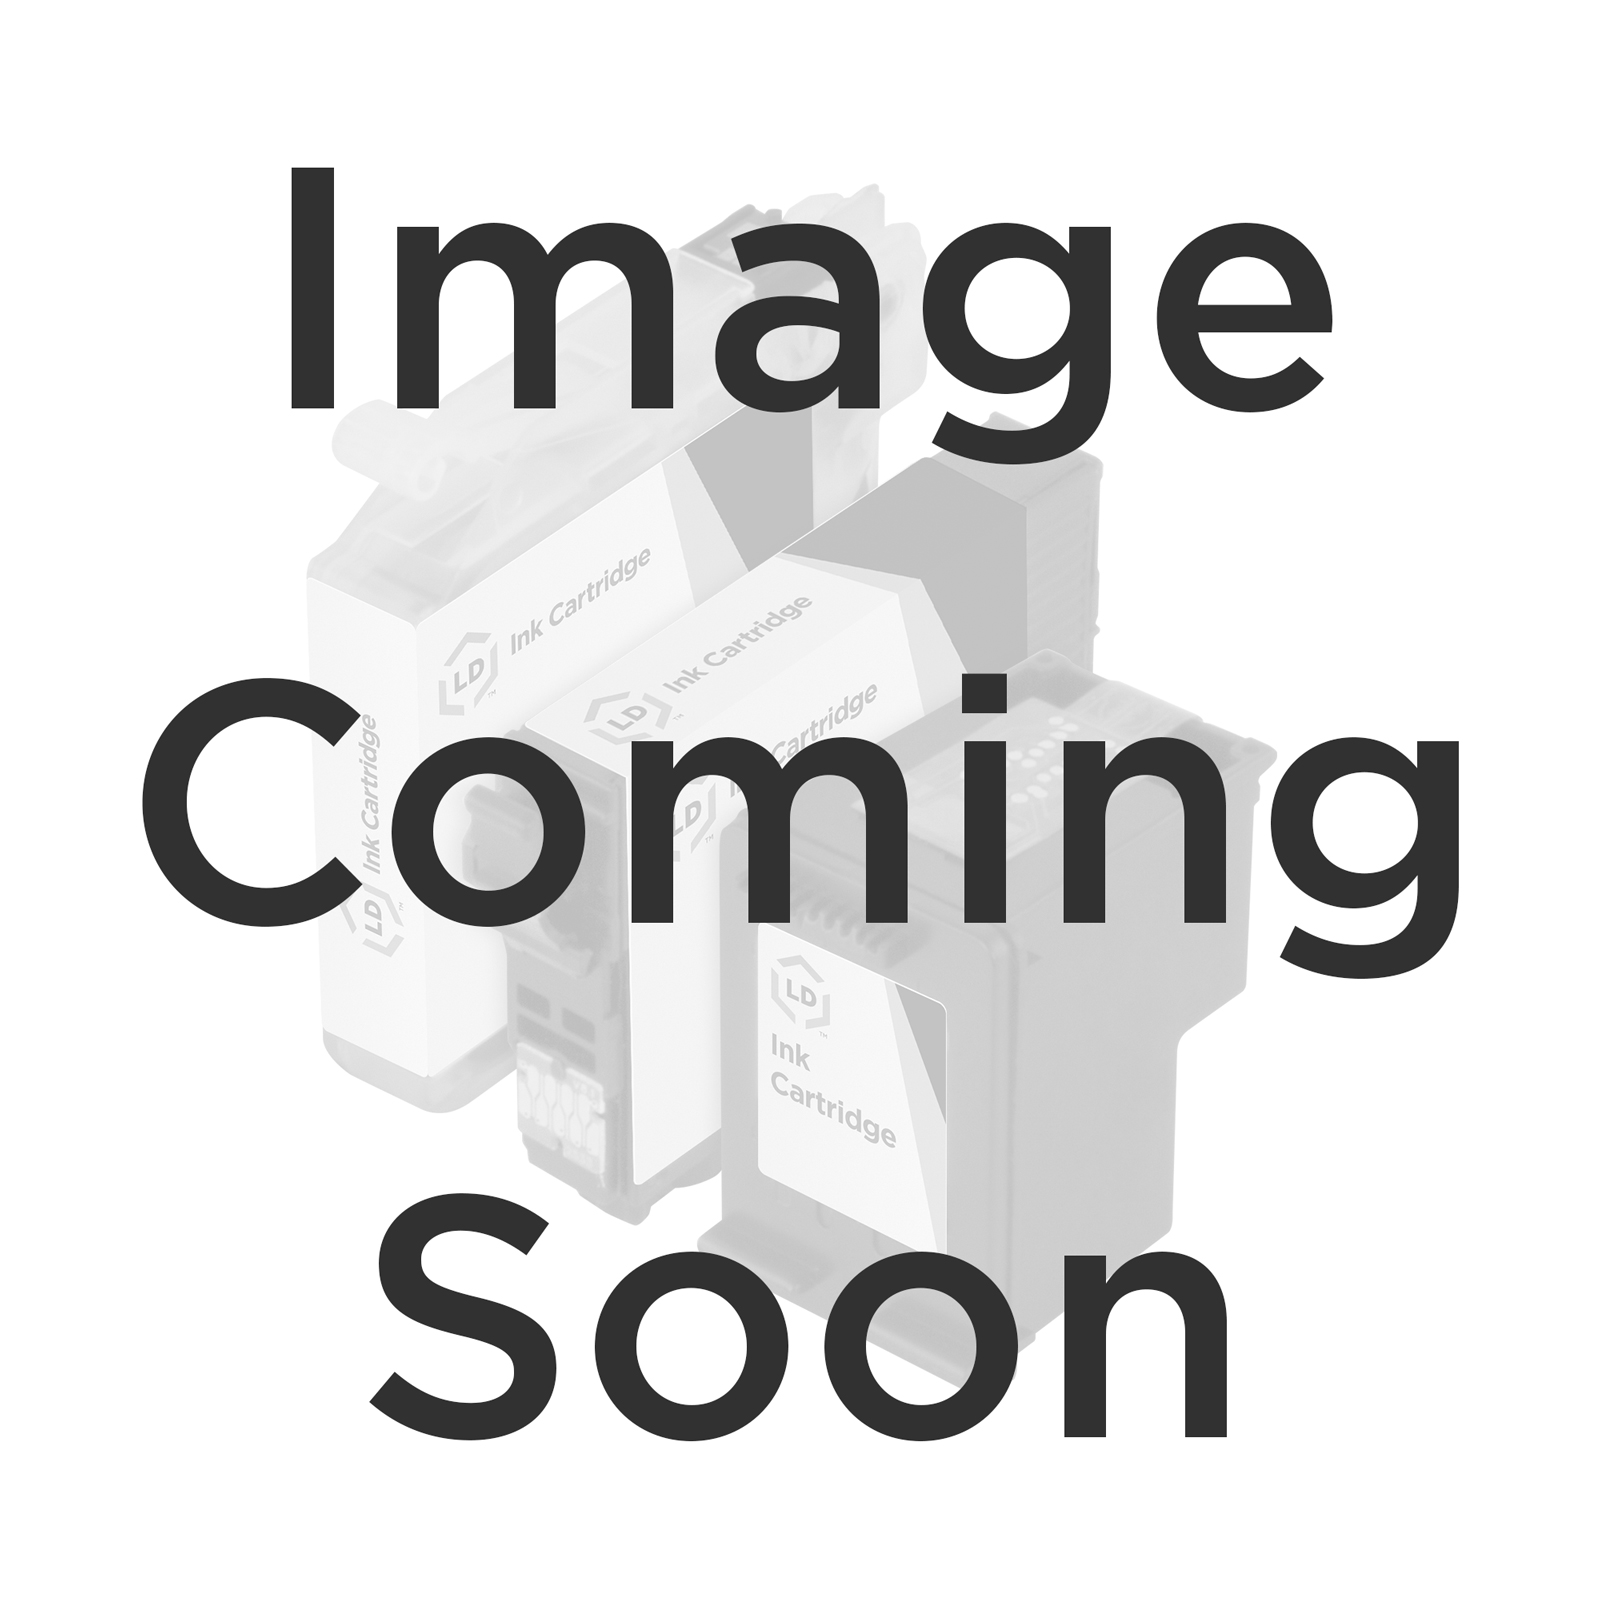 Compatible Canon PGI-225 & CLI-226: 1 Pigment Bk PGI-225 & 1 Each of CLI-226 Bk, C, M, Y (Set of Ink)